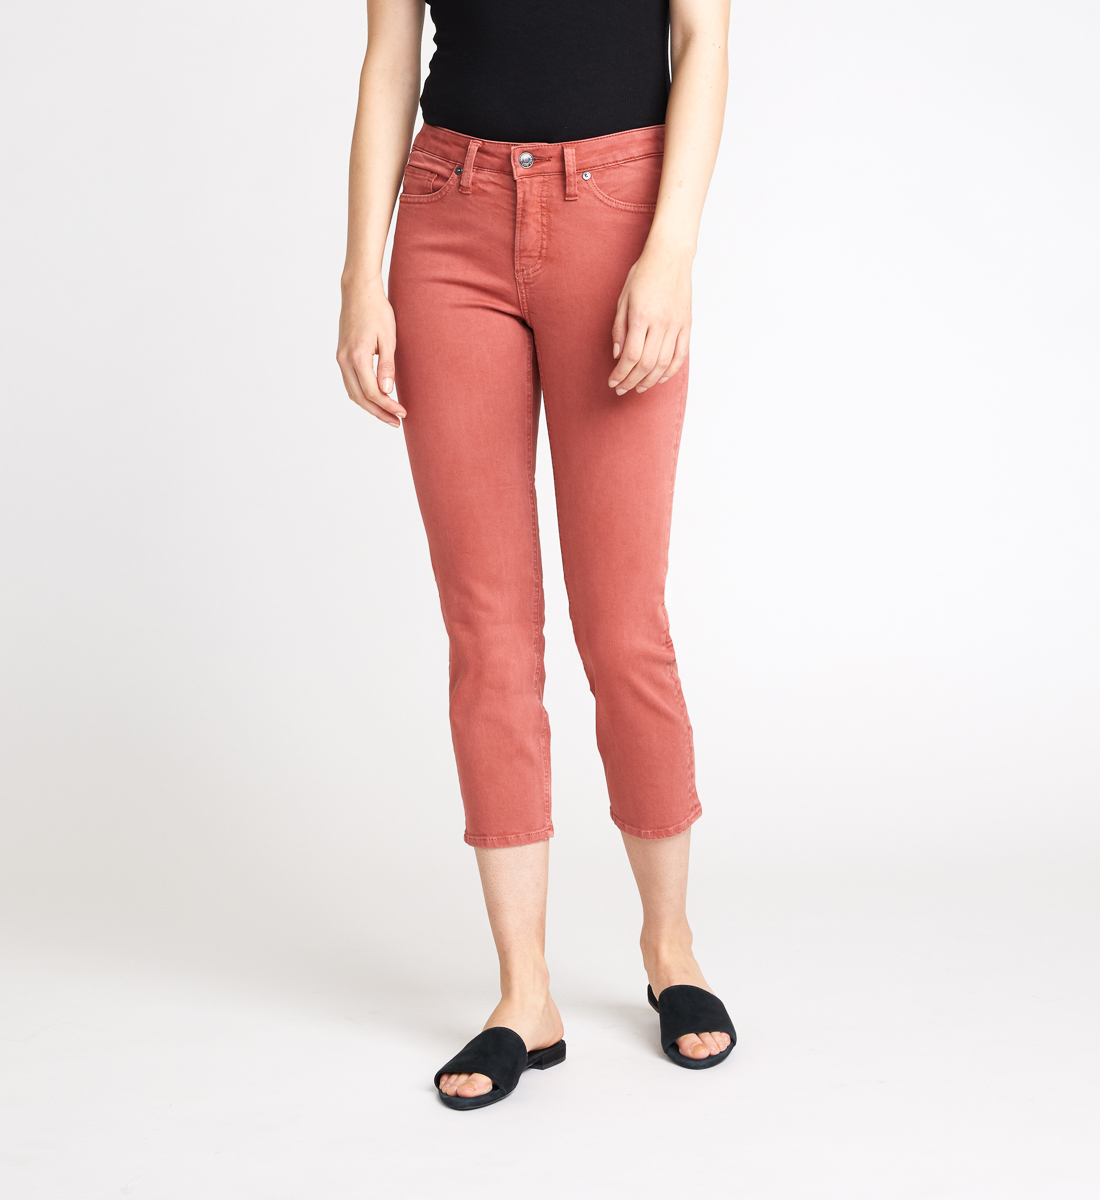 Silver Jeans Most Wanted Slim Crop